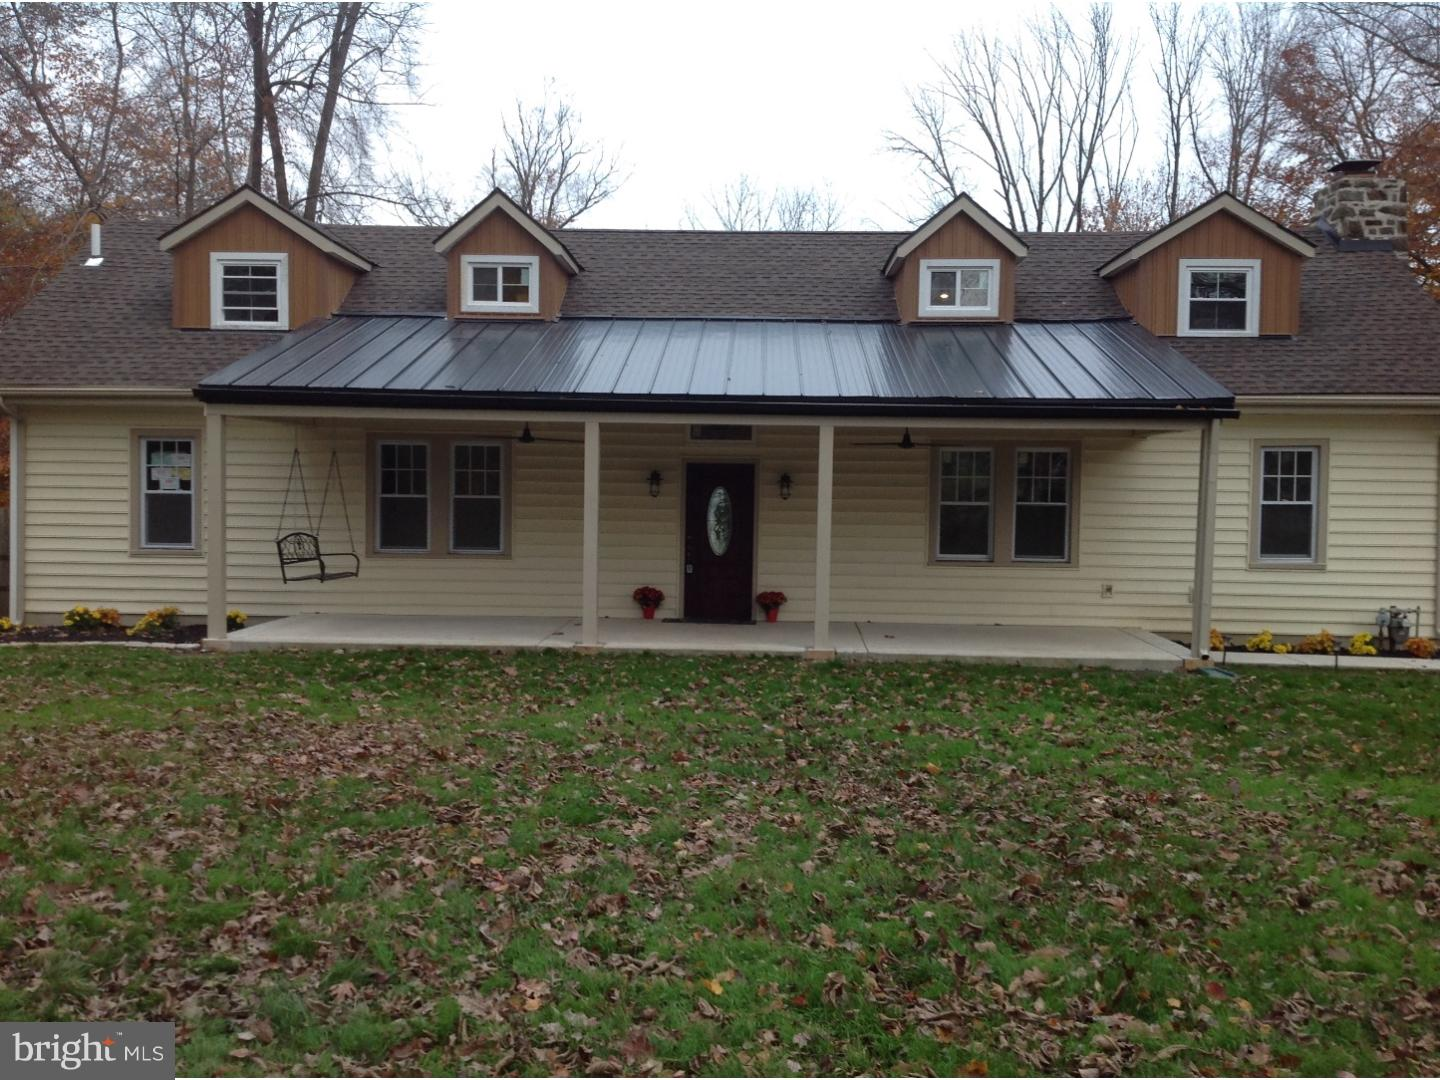 95 DUFFIELD STREET, WILLOW GROVE, PA 19090